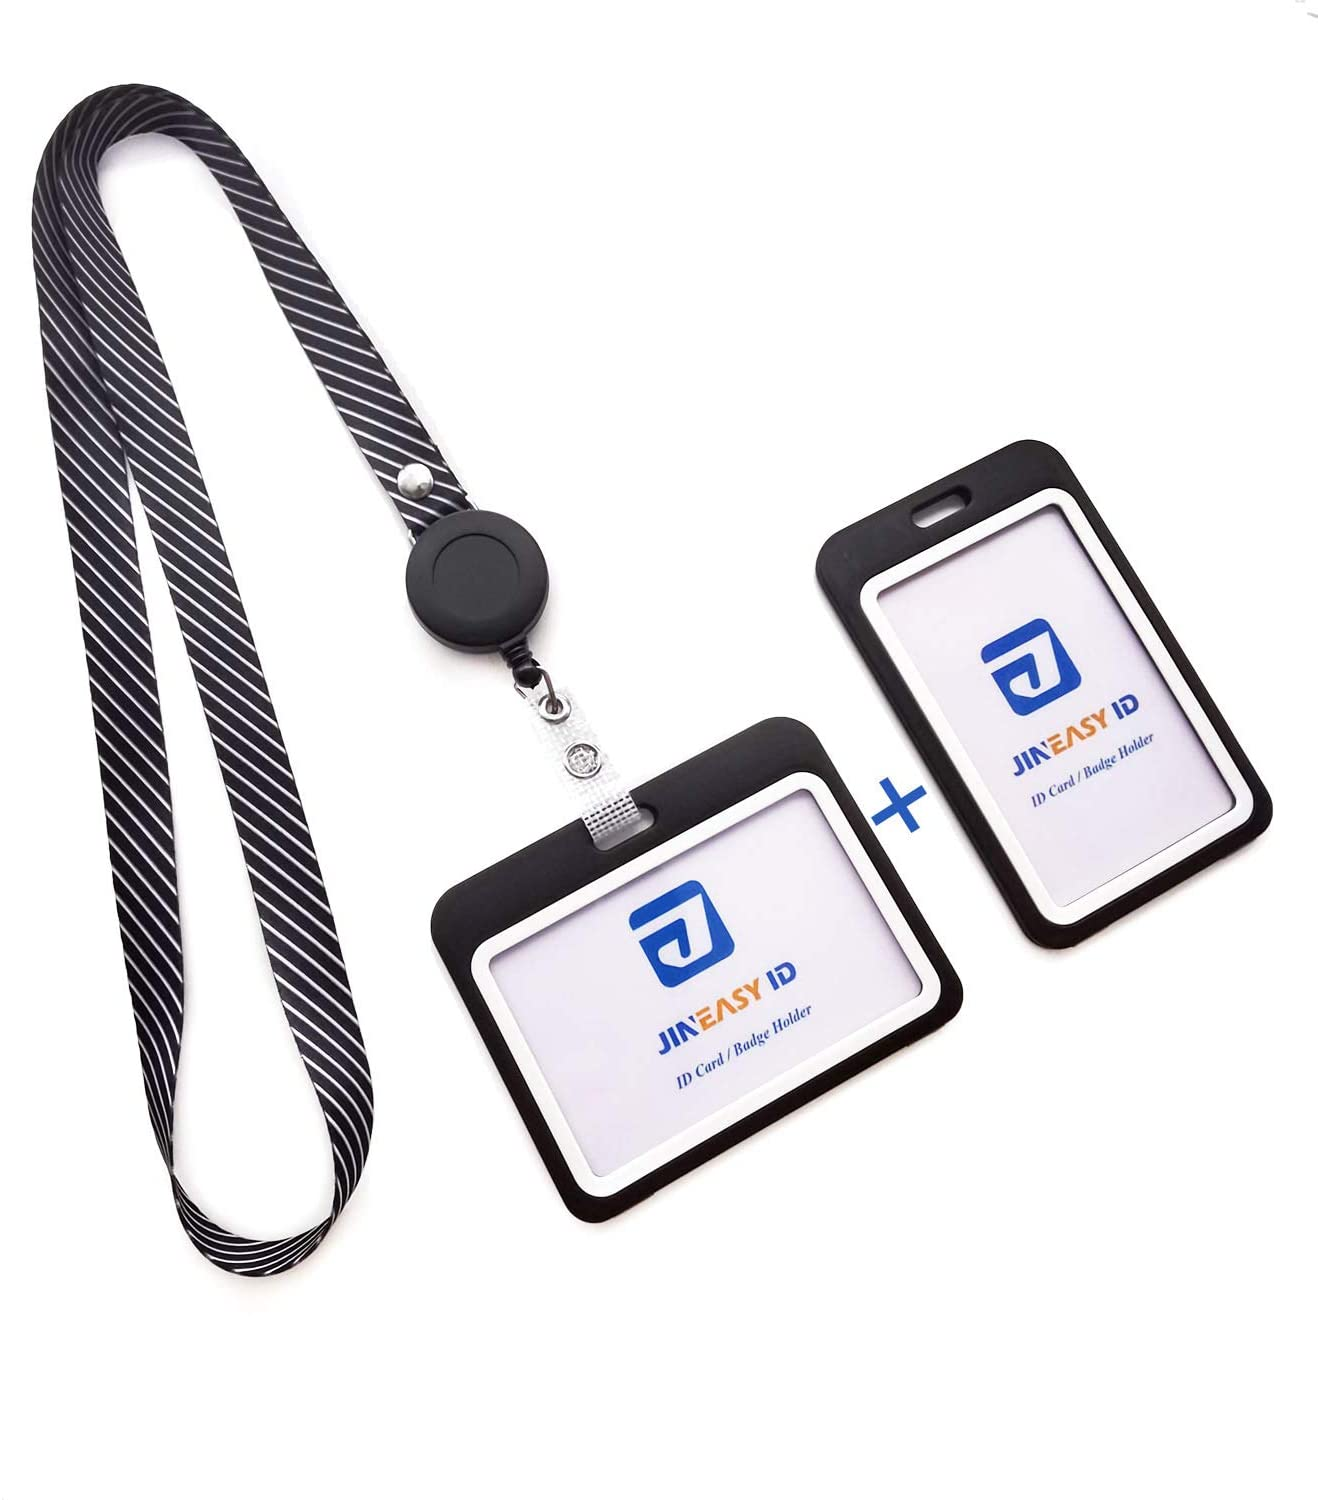 Jineasy ID Heavy Duty Lanyard and Retractable Reel with 2 Sets Hard Plastic ID Badge Holder